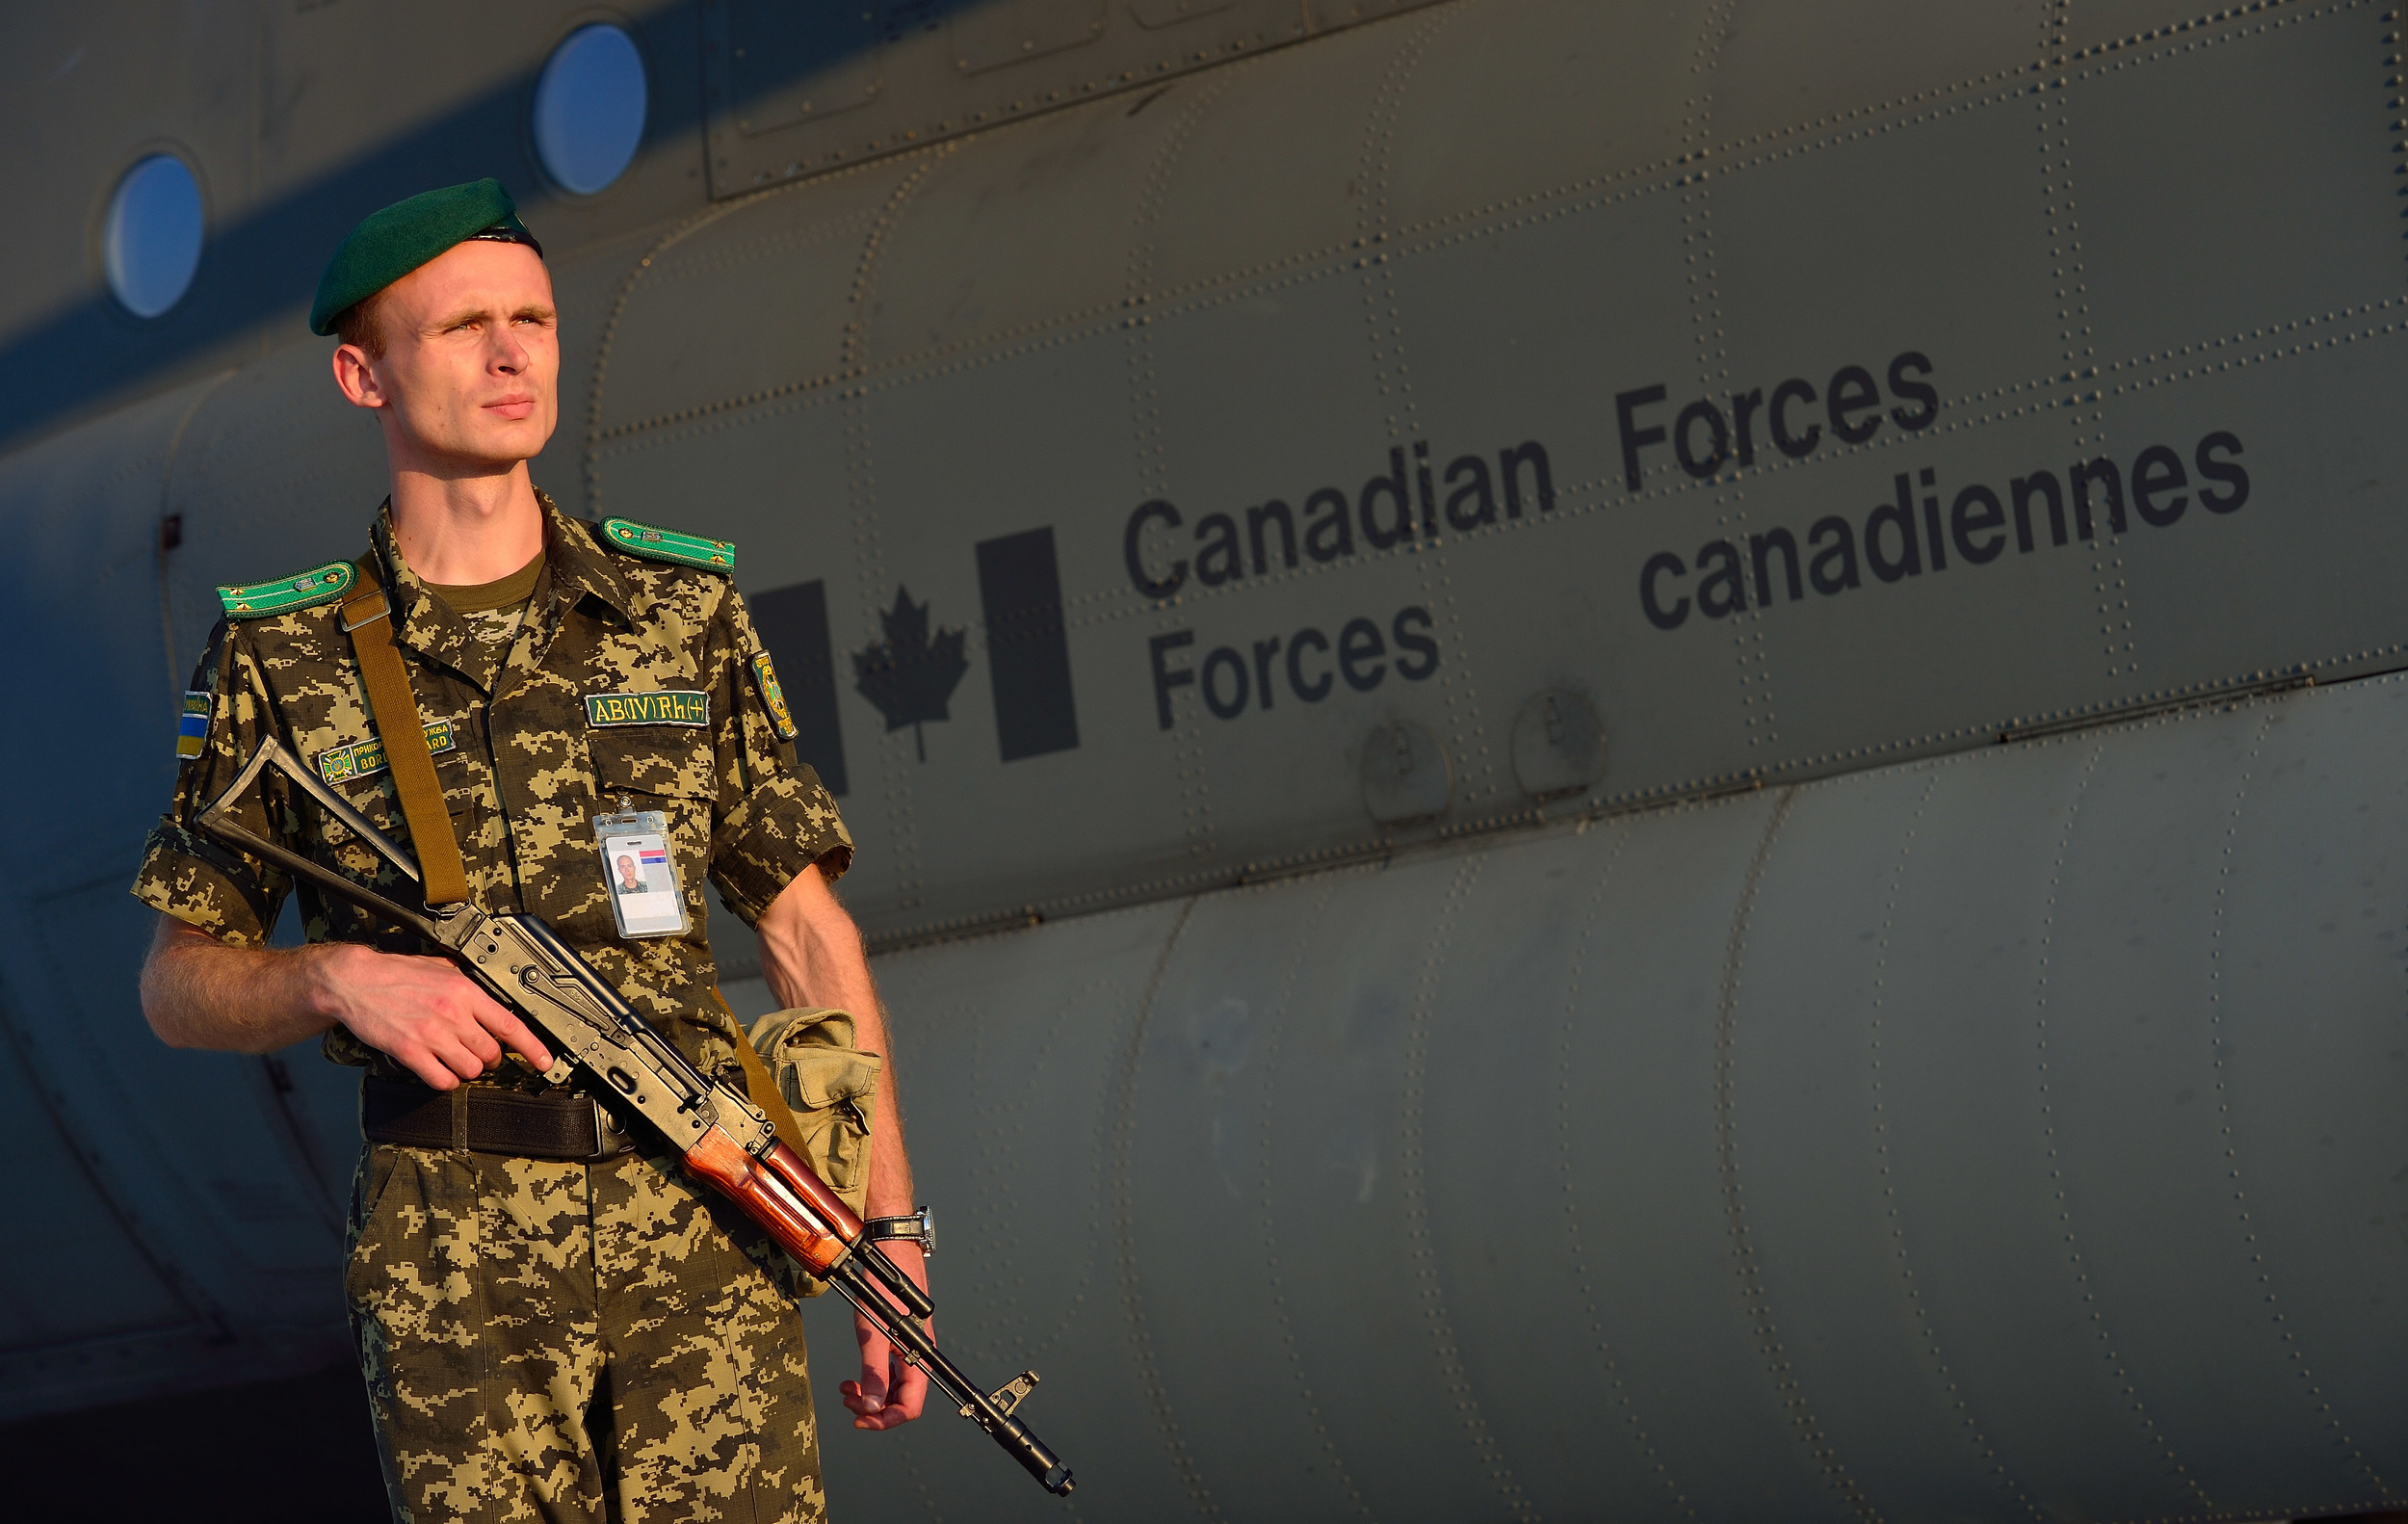 A Ukrainian soldier stands watch at Boryspil International Airport as equipment from a Canadian CC-130J Hercules aircraft from 436 Transport Squadron in Trenton, Ontario is unloaded on August 8, 2014. (Combat Camera).